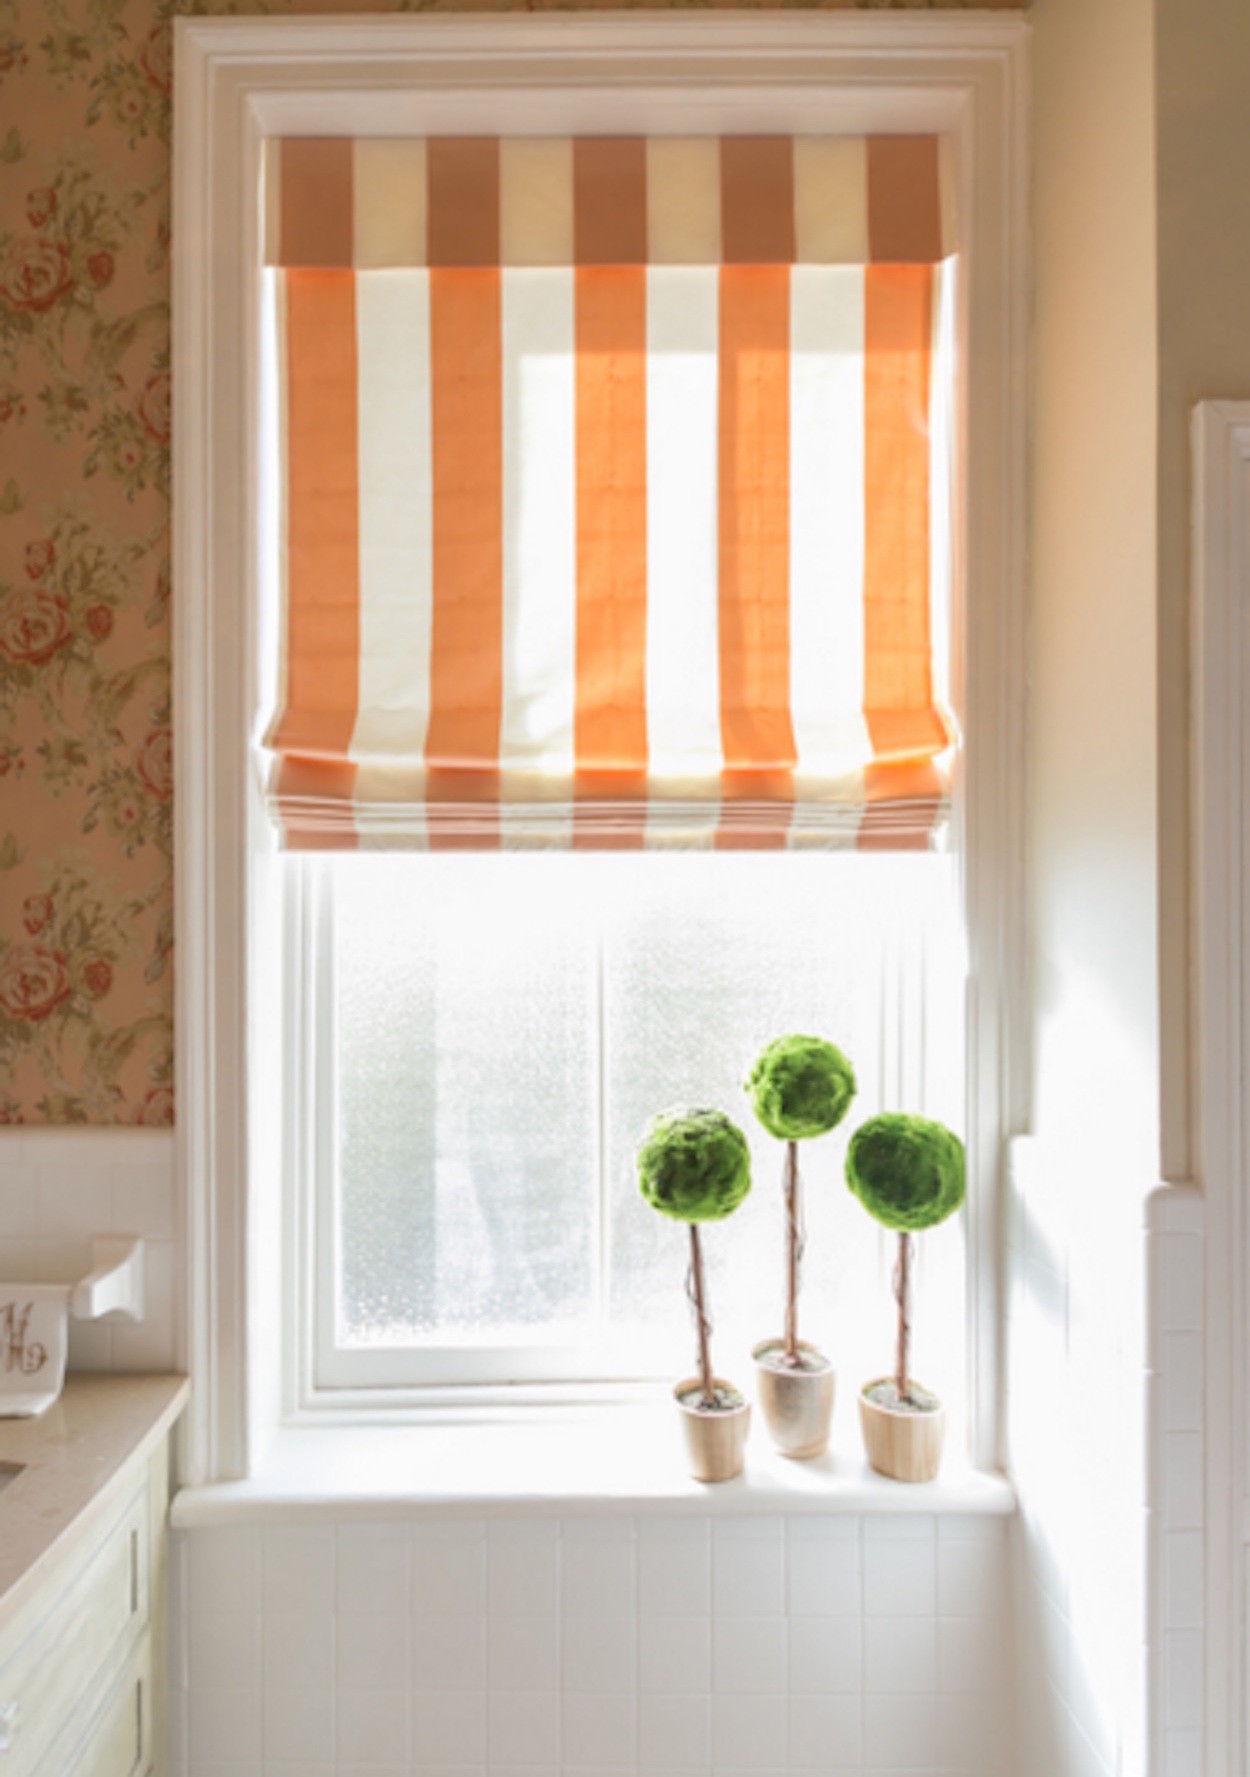 Bathroom Window Covering 7 Different Bathroom Window Treatments You Might Not Have Thought